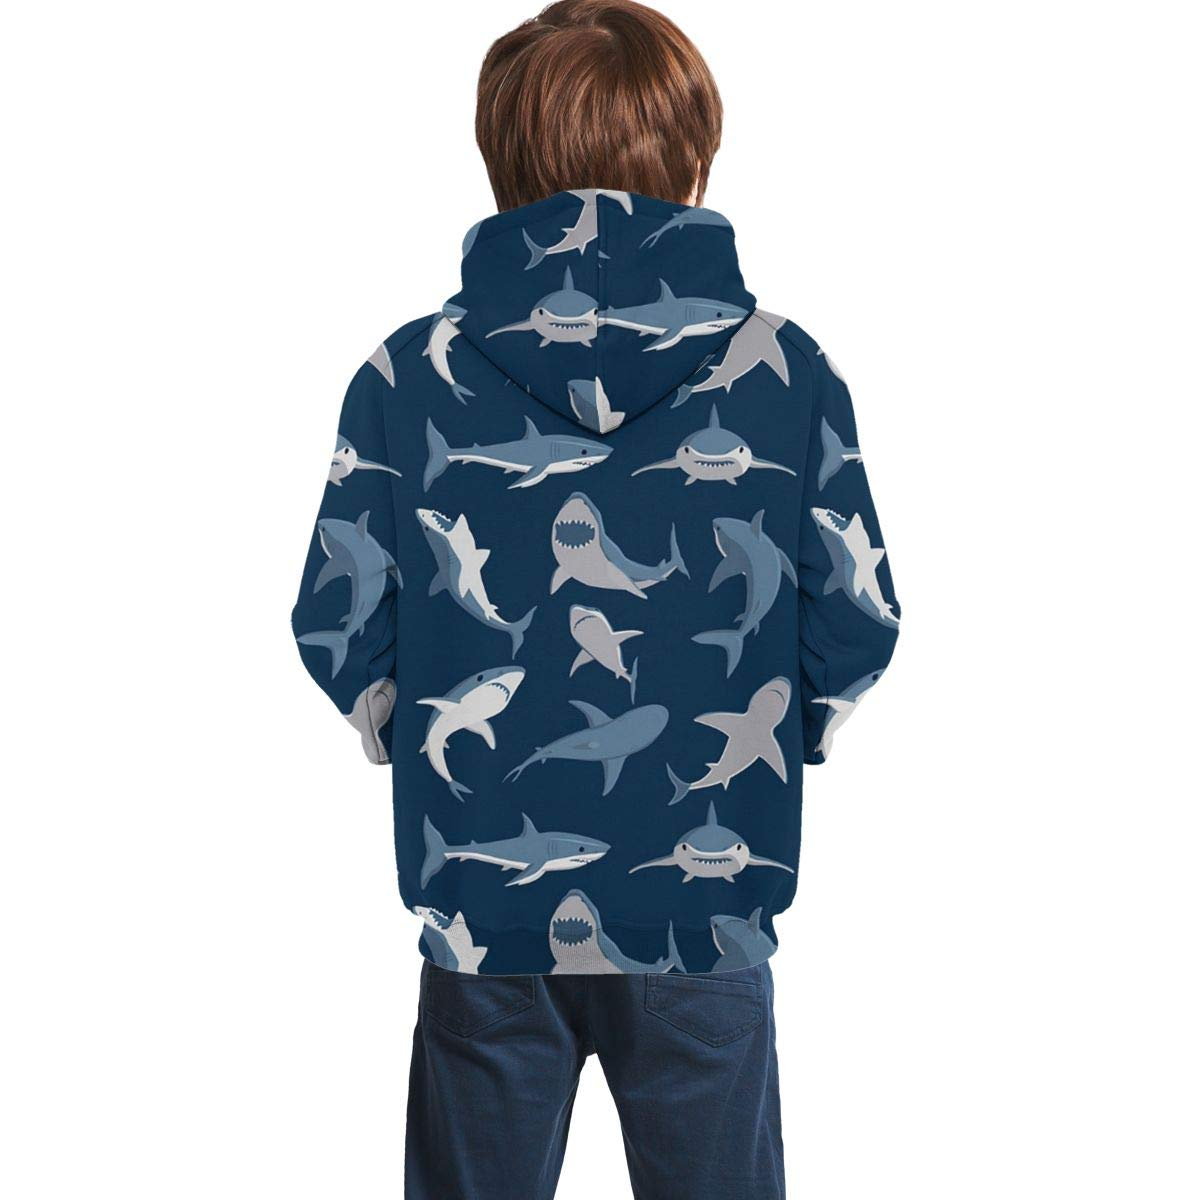 HengStore Ferocious Shark Boys Girls Full Print Athletic Hooded Sweatshirt Pullover with Pocket